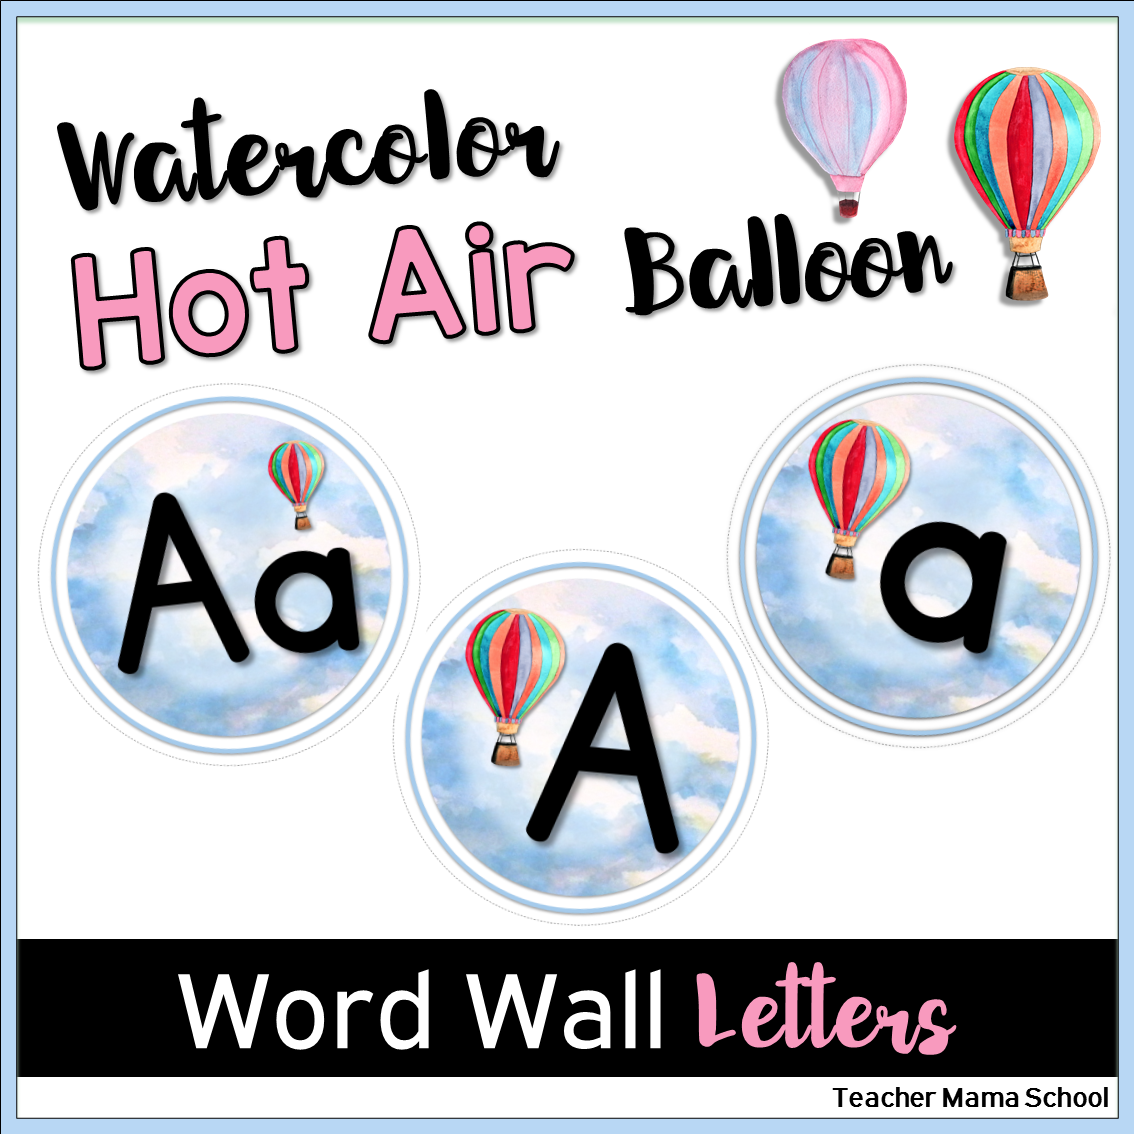 Word Wall Letters Glamorous Word Wall Letters Only  Watercolor Hot Air Balloon Theme  Word Decorating Design